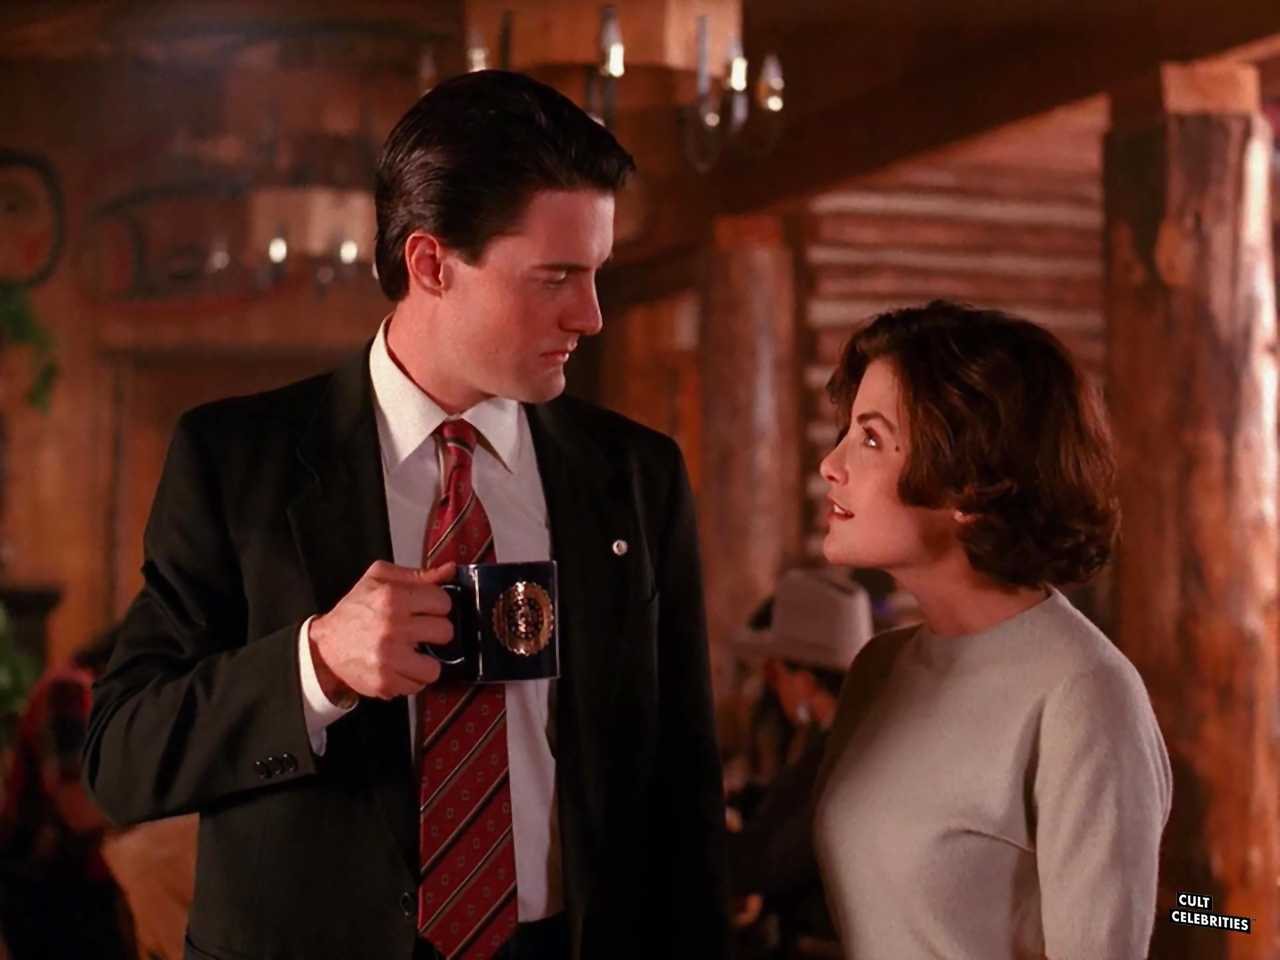 Sherilyn Fenn and Kyle MacLachlan in Twin Peaks (1990)